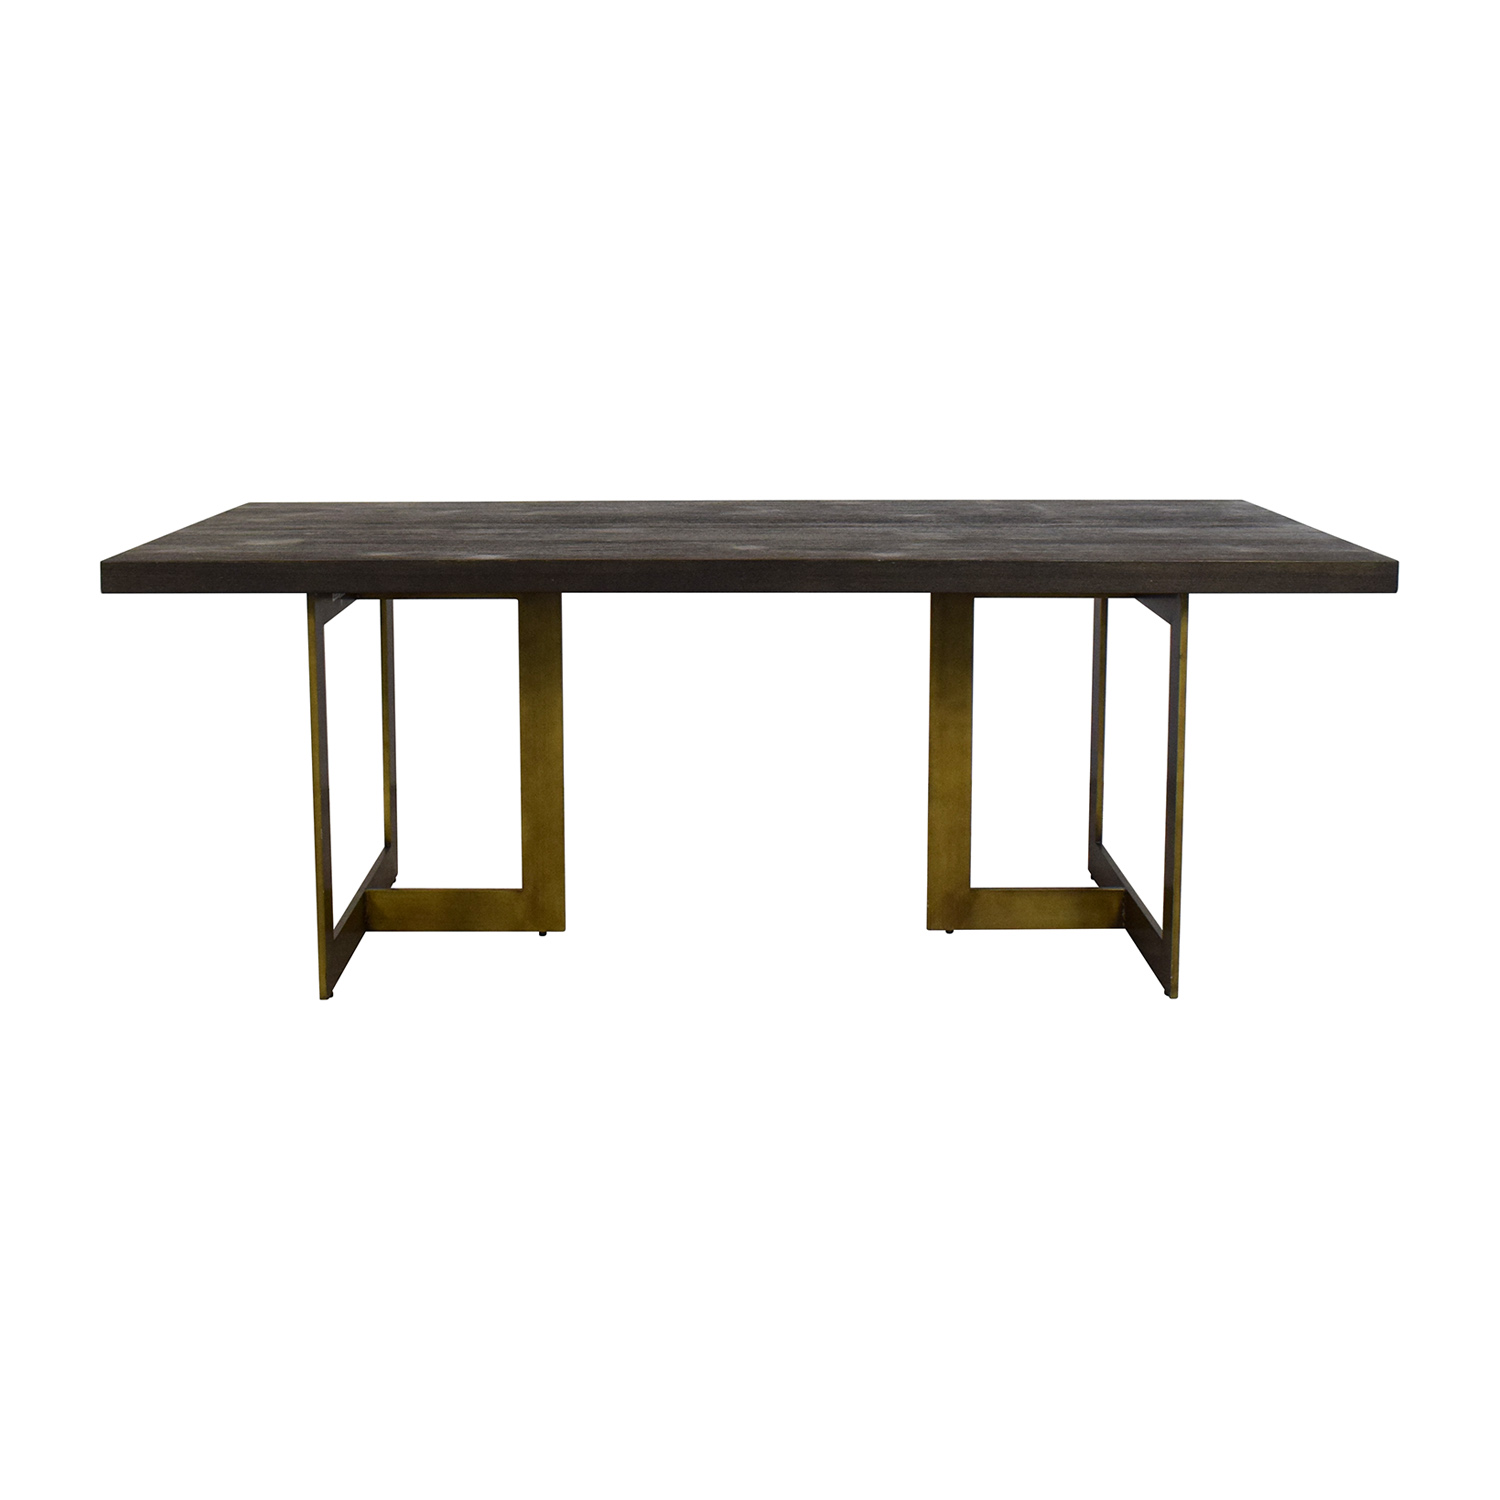 Macy's Macy's Cambridge Dining Table price